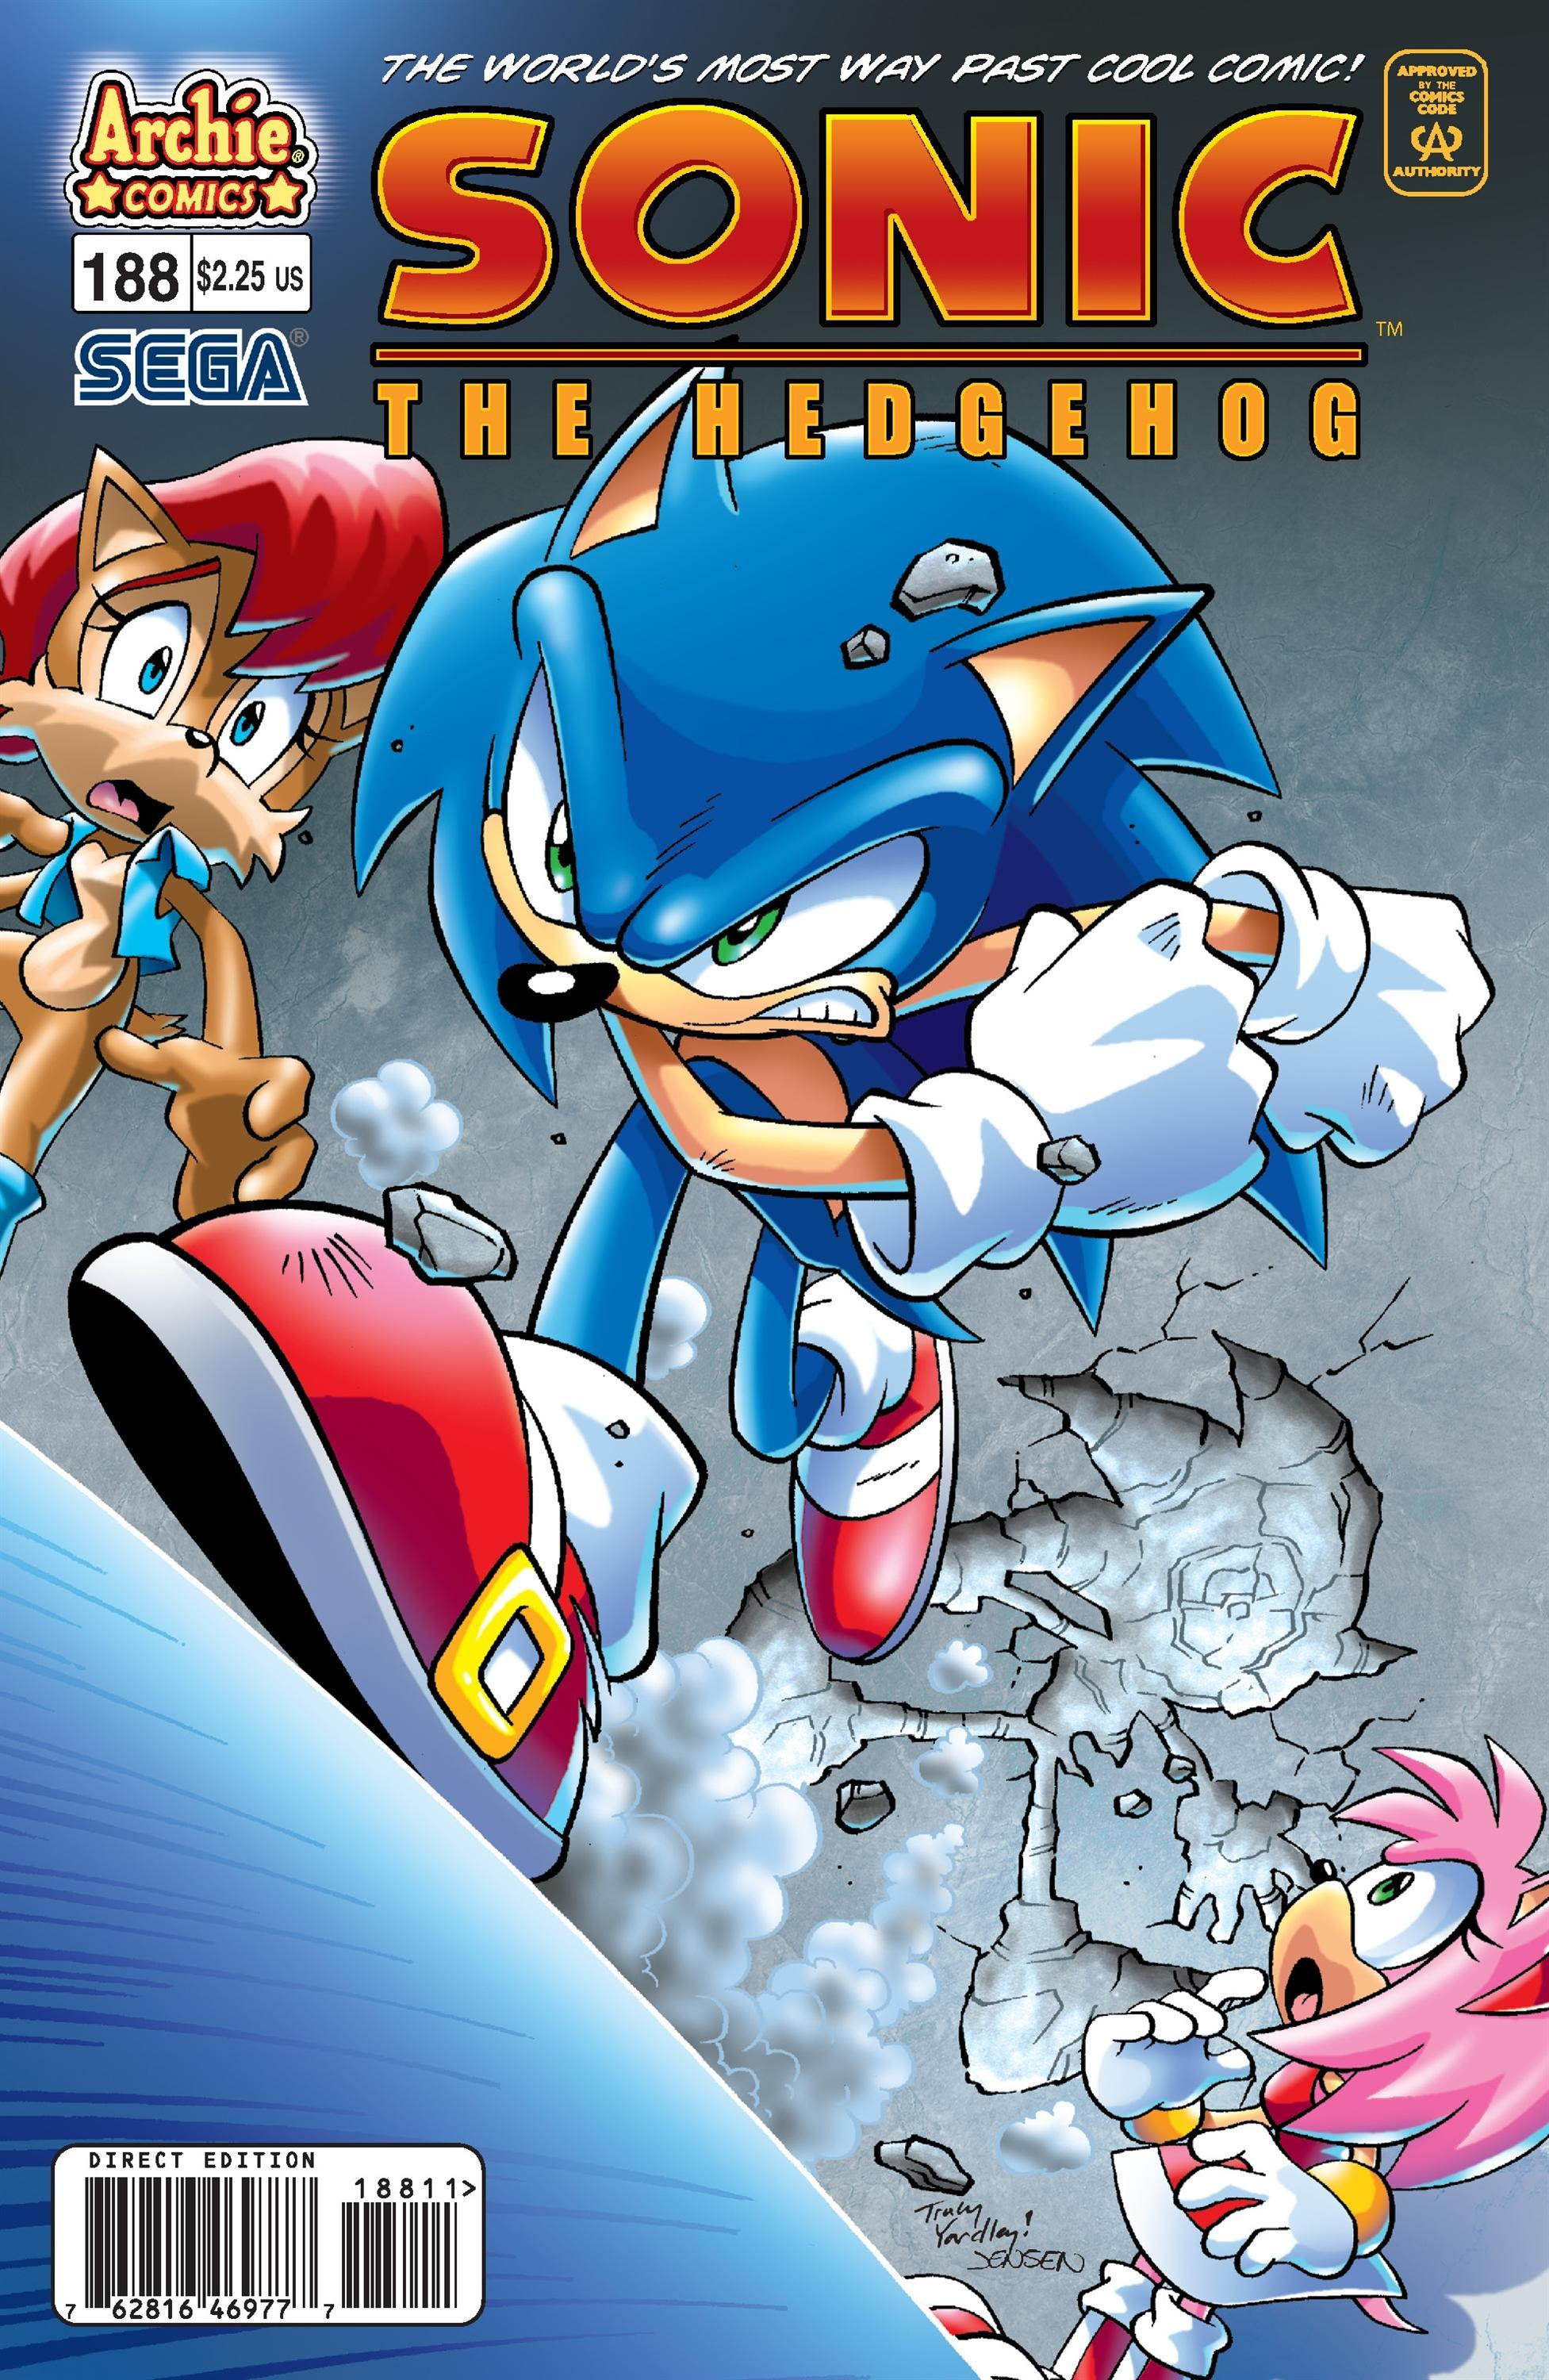 Archie Sonic The Hedgehog Issue 188 Sonic News Network Fandom